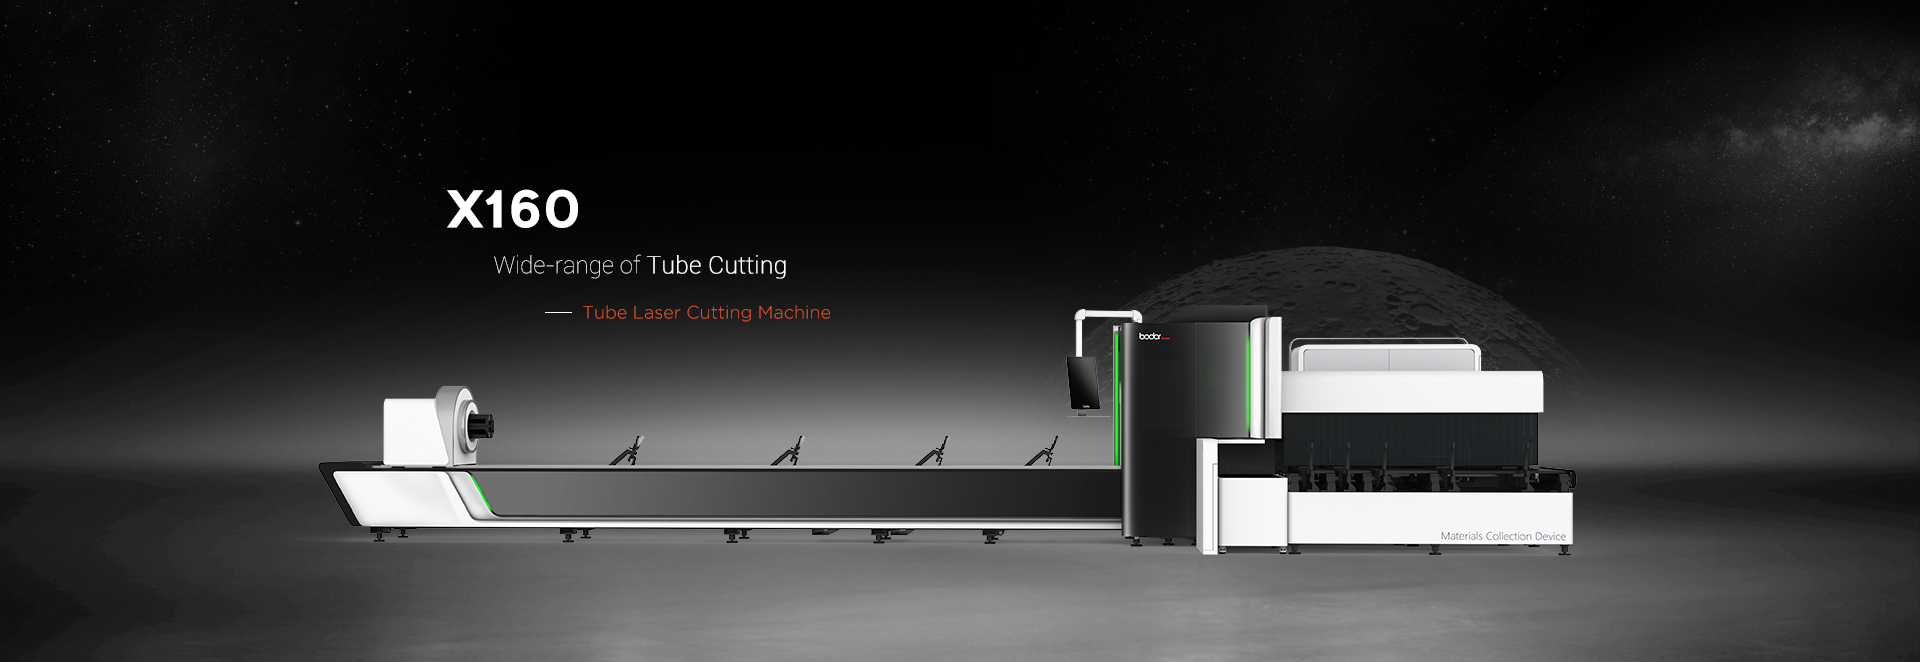 Tube Laser Cutting Machine X160